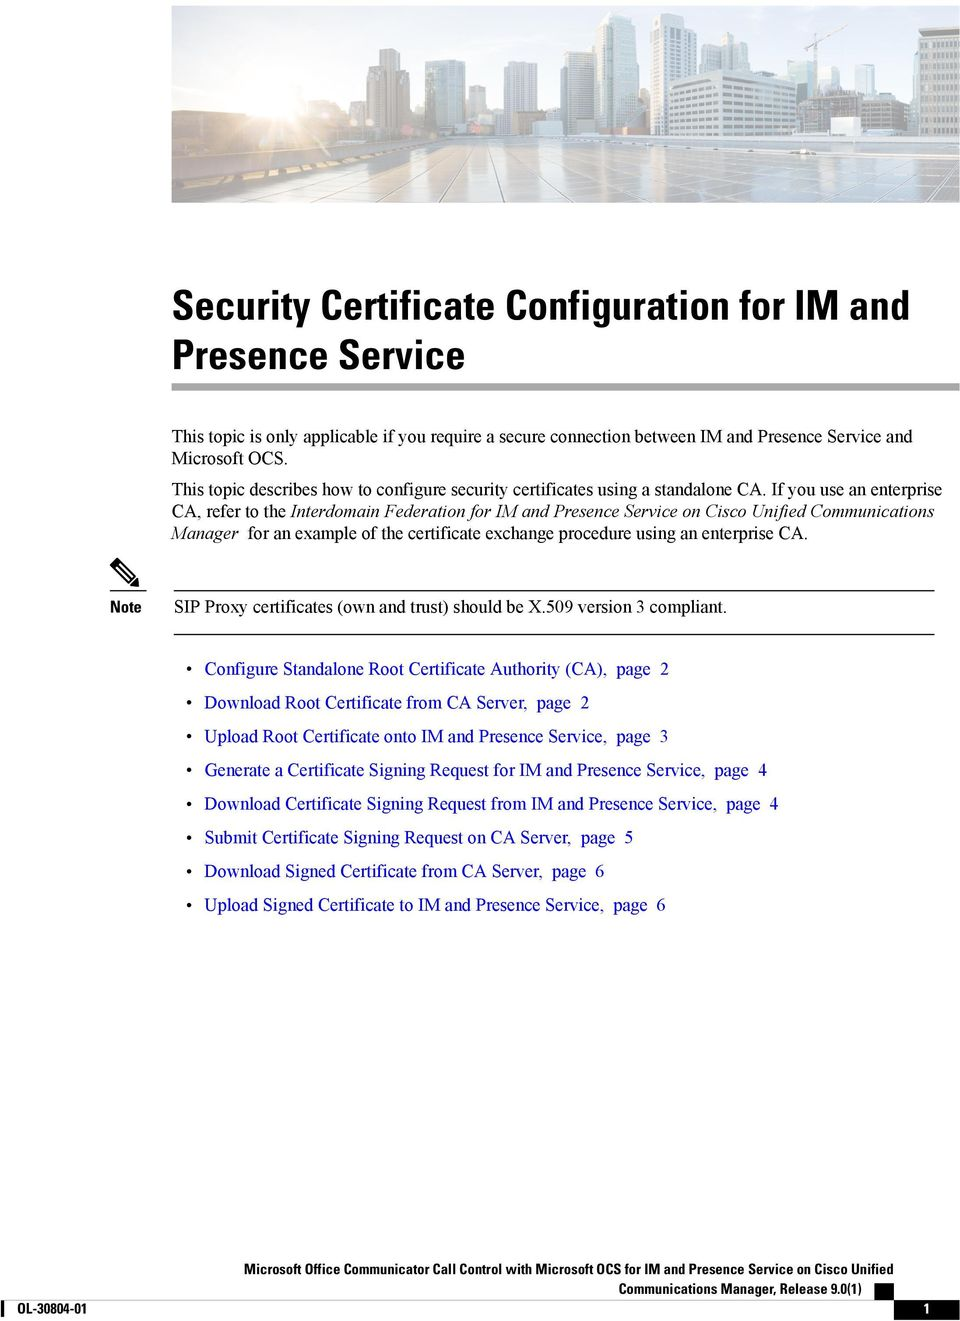 If you use an enterprise CA, refer to the Interdomain Federation for IM and Presence Service on Cisco Unified Communications Manager for an example of the certificate exchange procedure using an